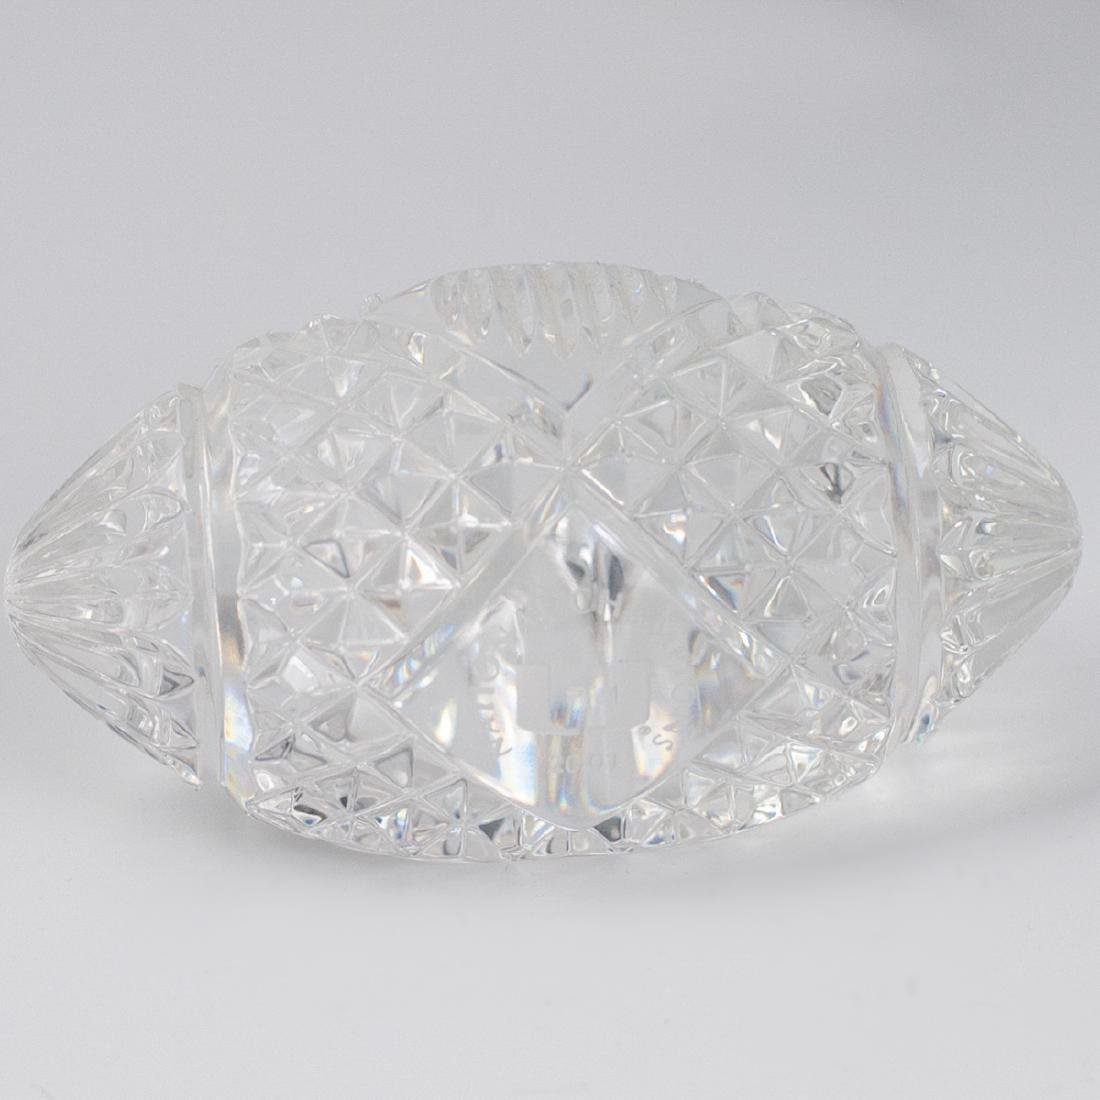 Waterford Crystal Miami Hurricanes National